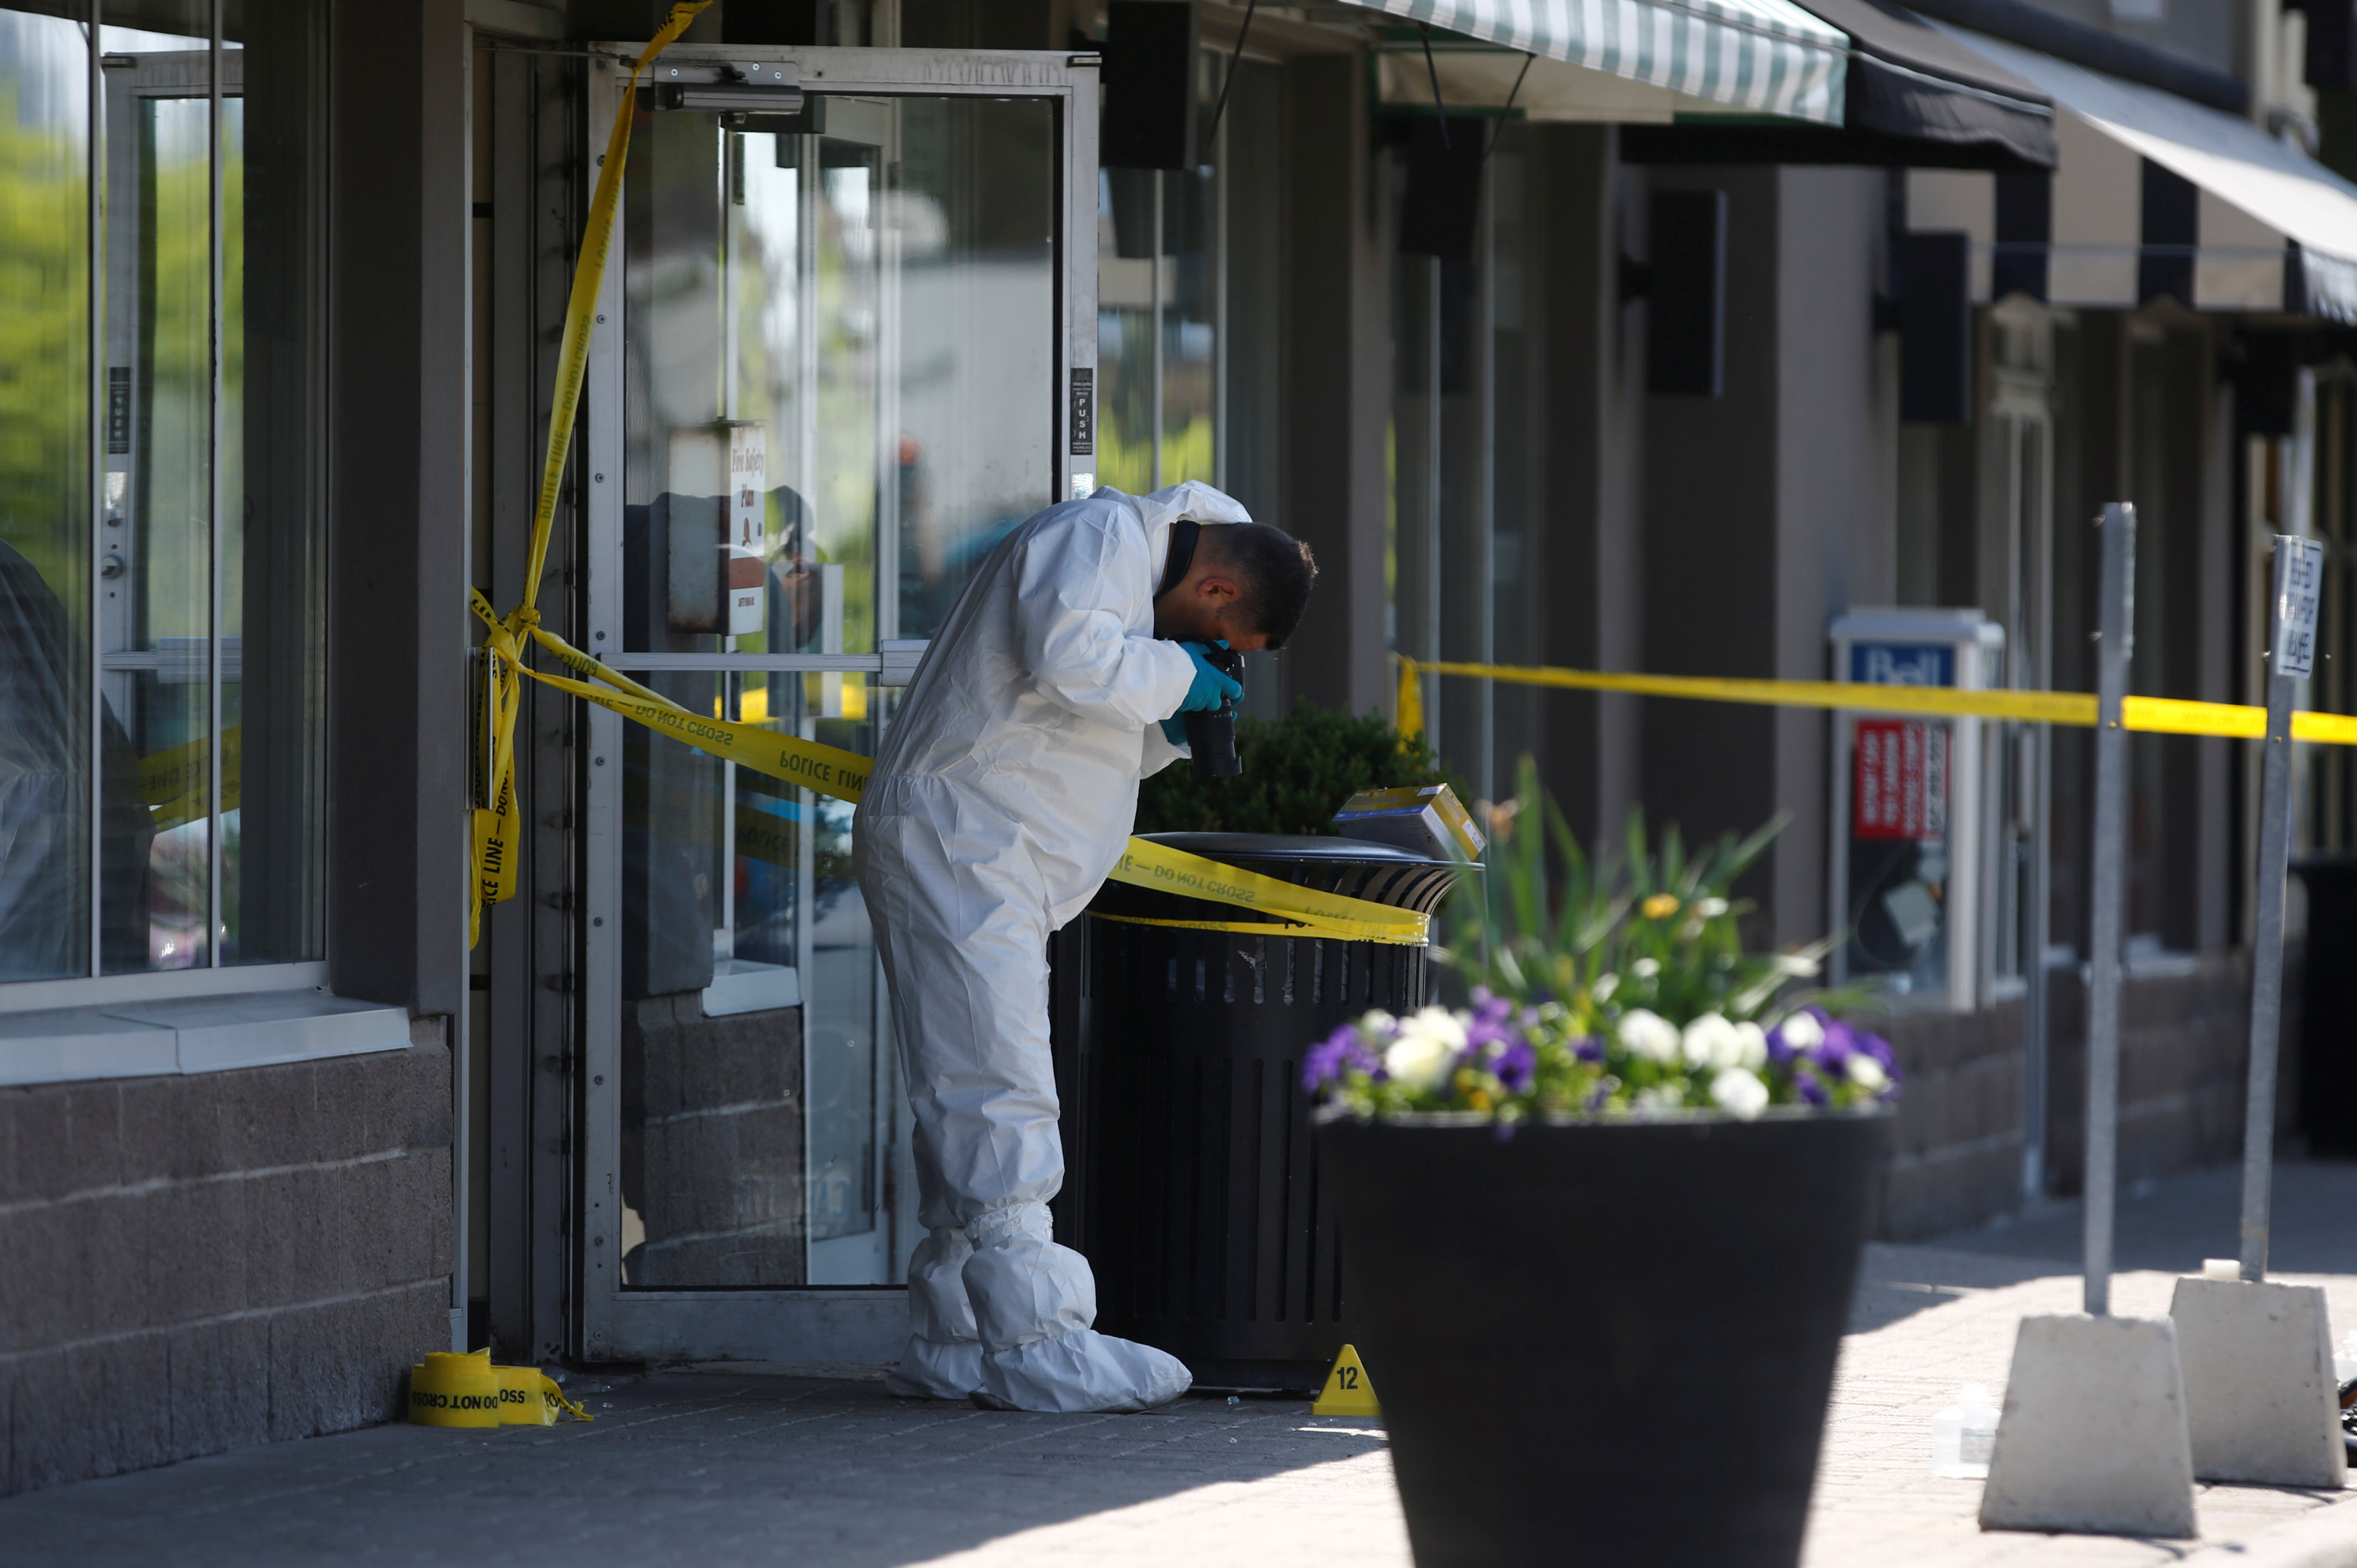 A police forensic investigator photographs evidence at Bombay Bhel restaurant, where two unidentified men set off a bomb late Thursday night, wounding fifteen people, in Mississauga, Ontario, Canada May 25, 2018. REUTERS/Mark Blinch